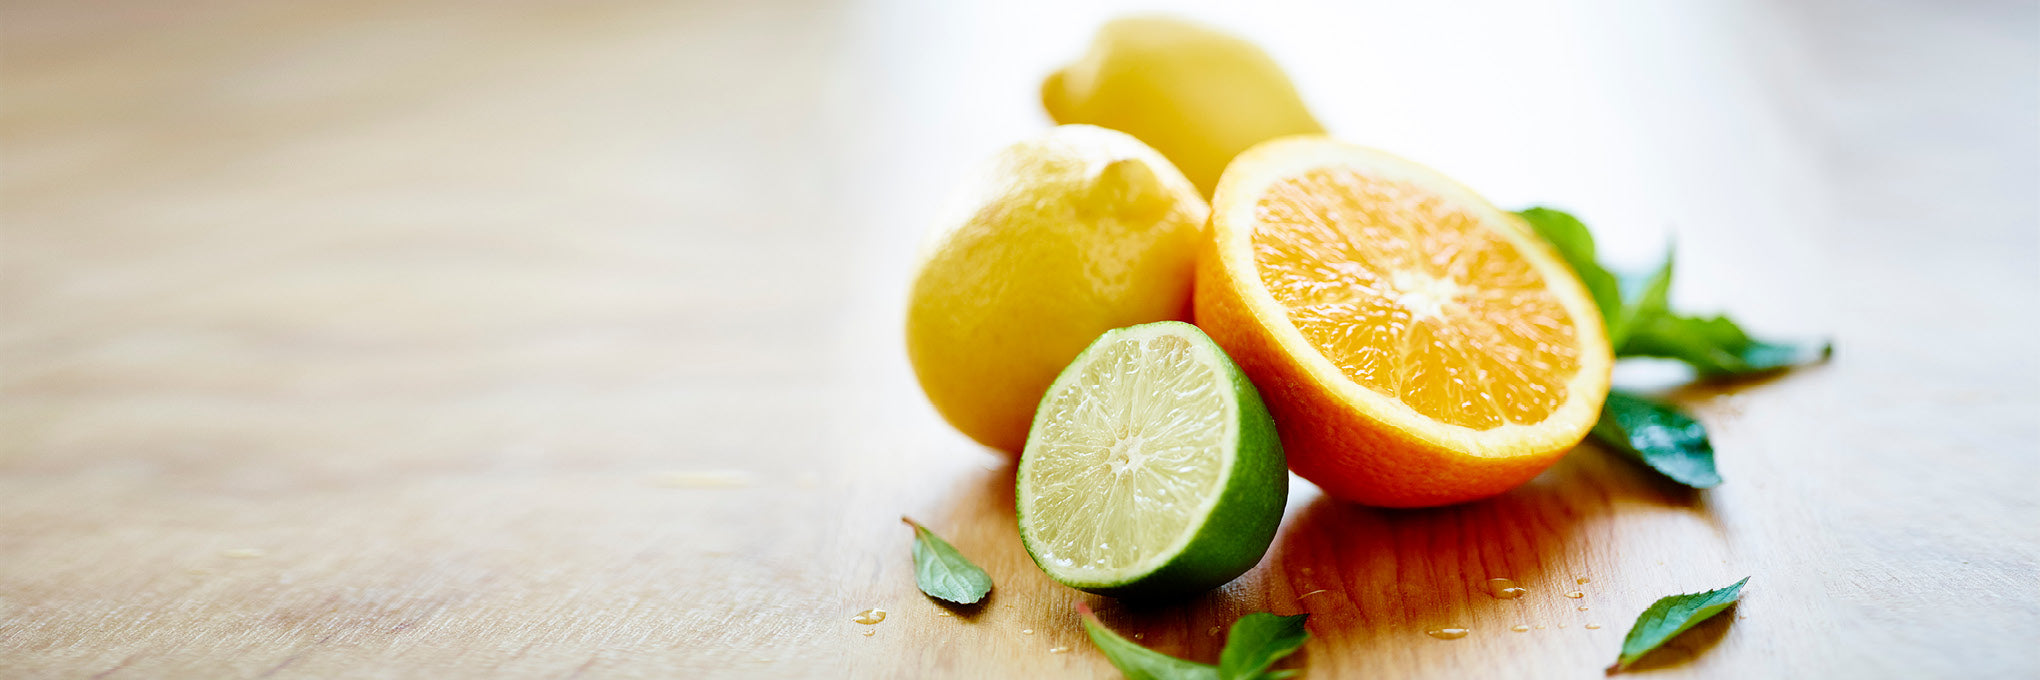 Featured terpenes: Citrus aromas